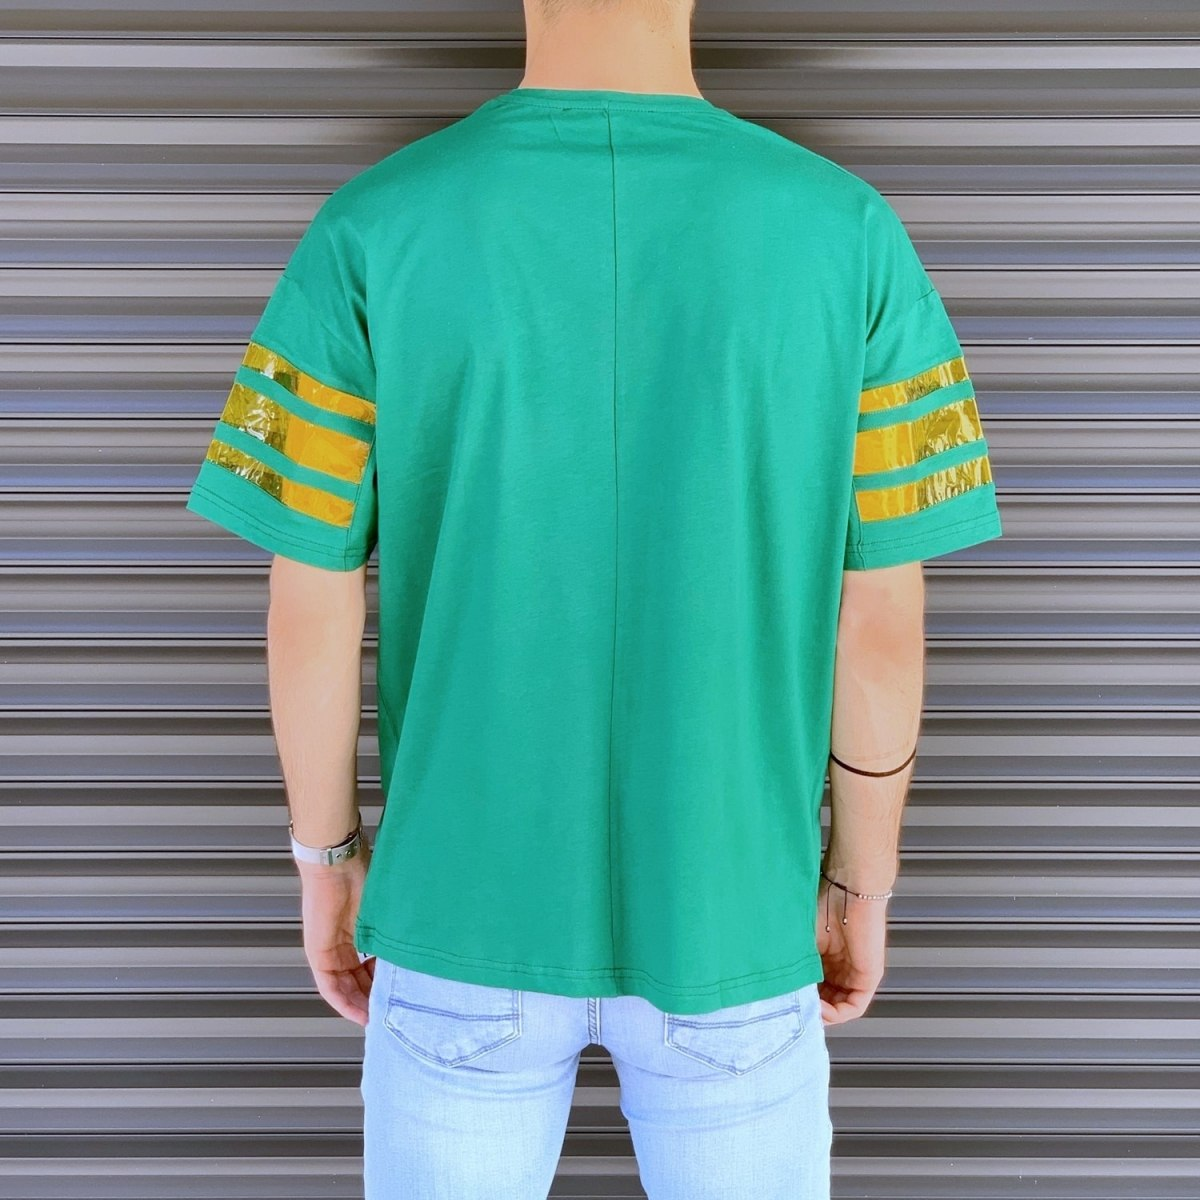 Men's Comfort Arm Striped T-Shirt In Green Mv Premium Brand - 3